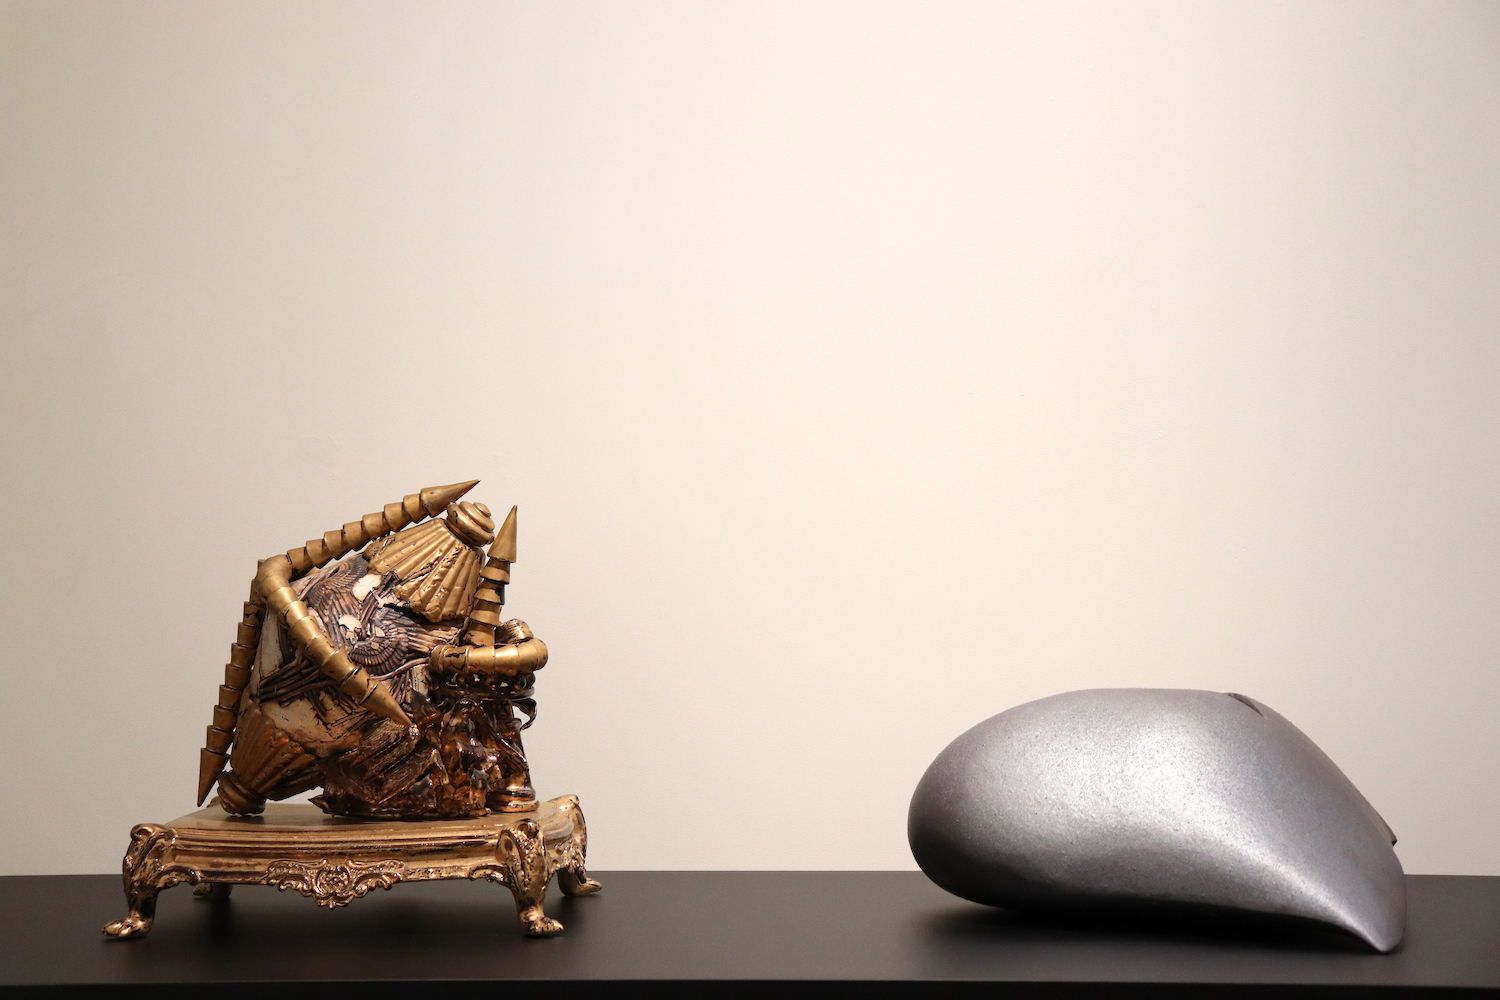 left: Kohei Nakamura, Resurrection, 1991, earthenware and metal, 31.5 x 28 x 31 cm (work), 42.5 x 31 x 9.8 cm (pedestal) / right: Kazuo Takiguchi, Untitled, 1991, ceramic, 47 x 39 x 22 cm